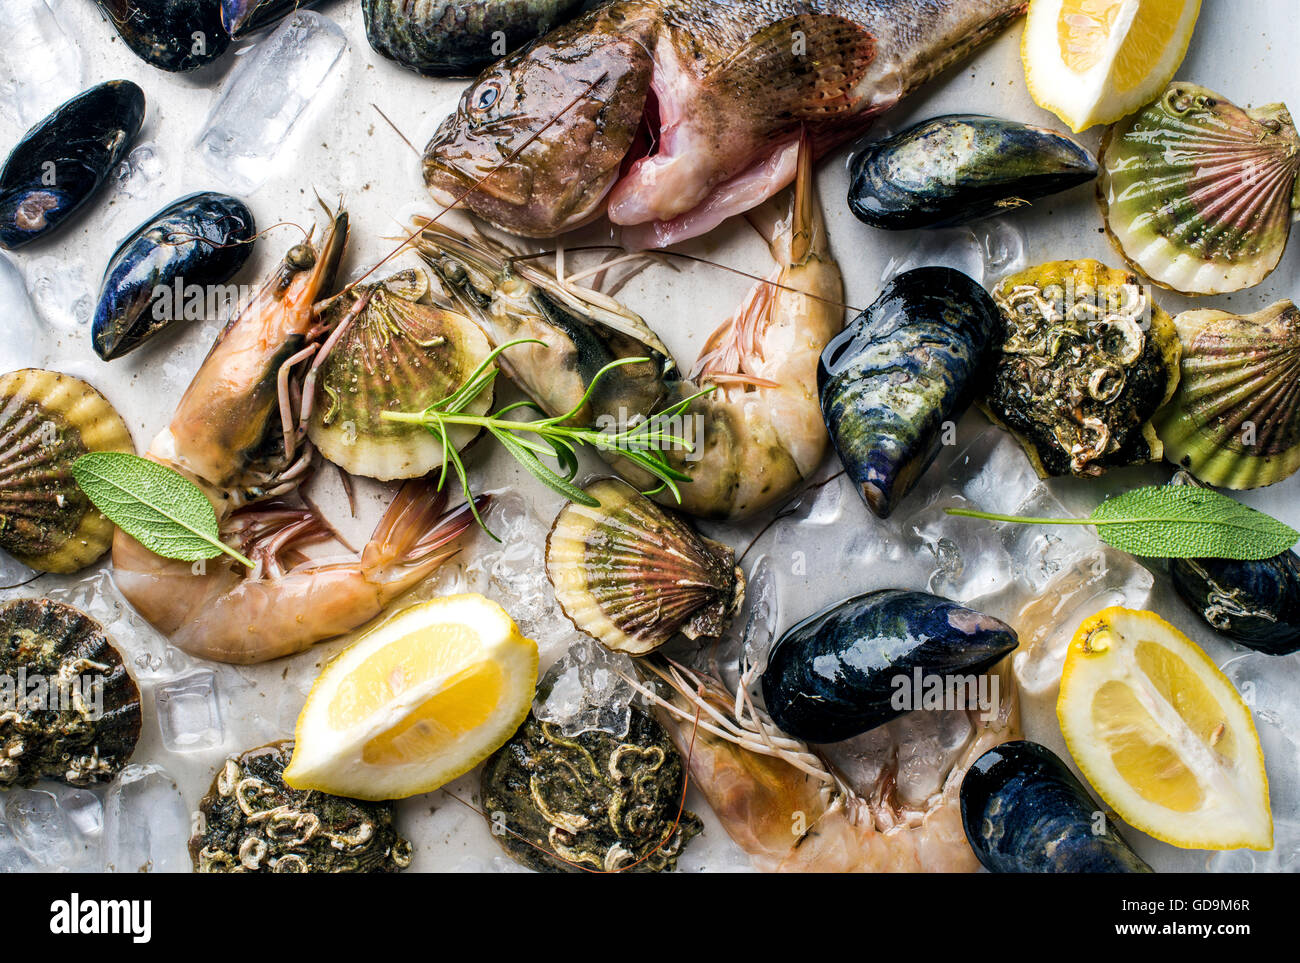 Fresh seafood with herbs and lemon slices on ice. Prawns, fish, mussels and scallops over steel metal background, - Stock Image